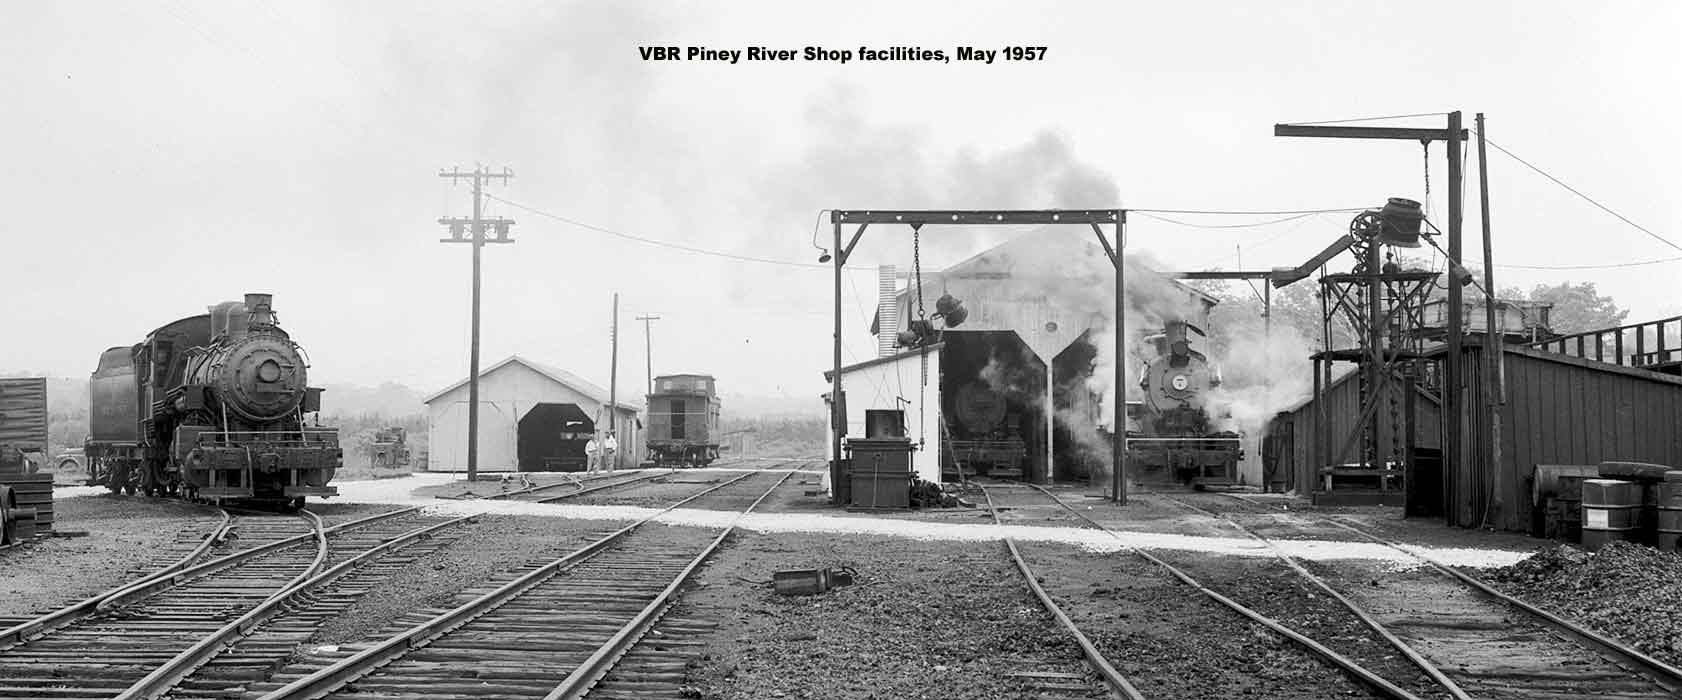 VBR Piney River Shop